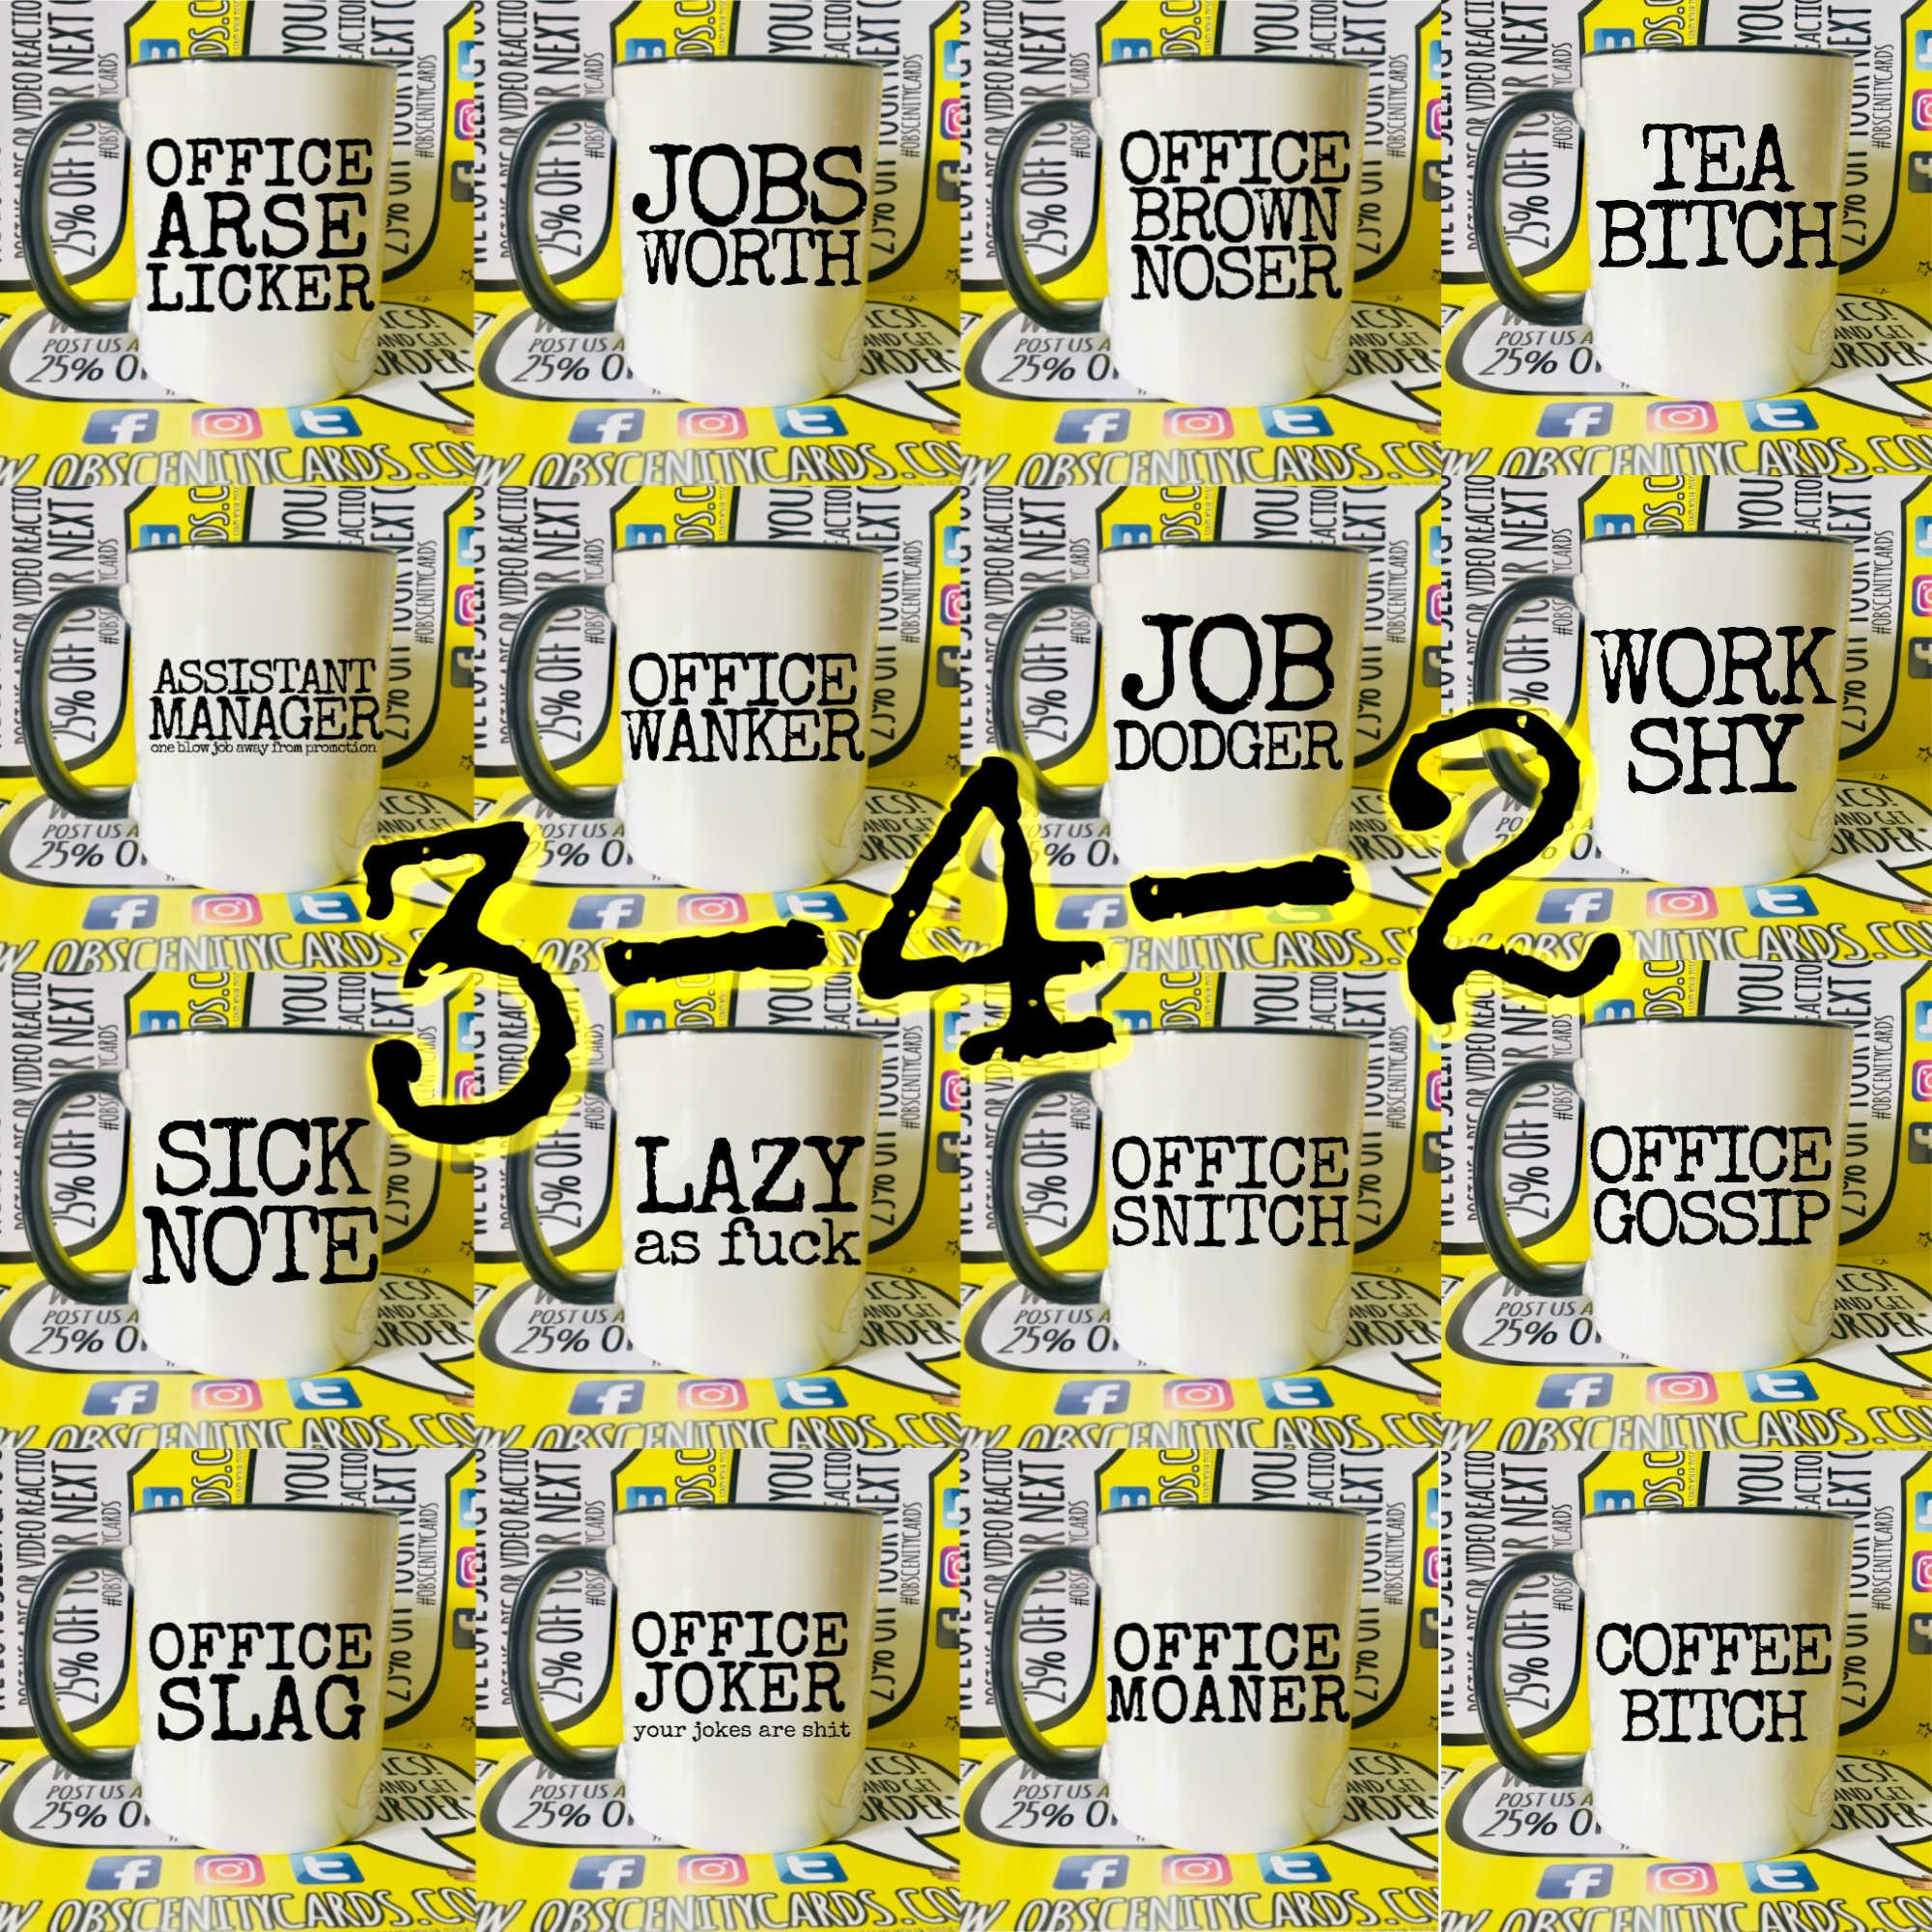 VARIOUS FUNNY OFFICE MUGS / CUPS 3-4-2 By Obscenity cards